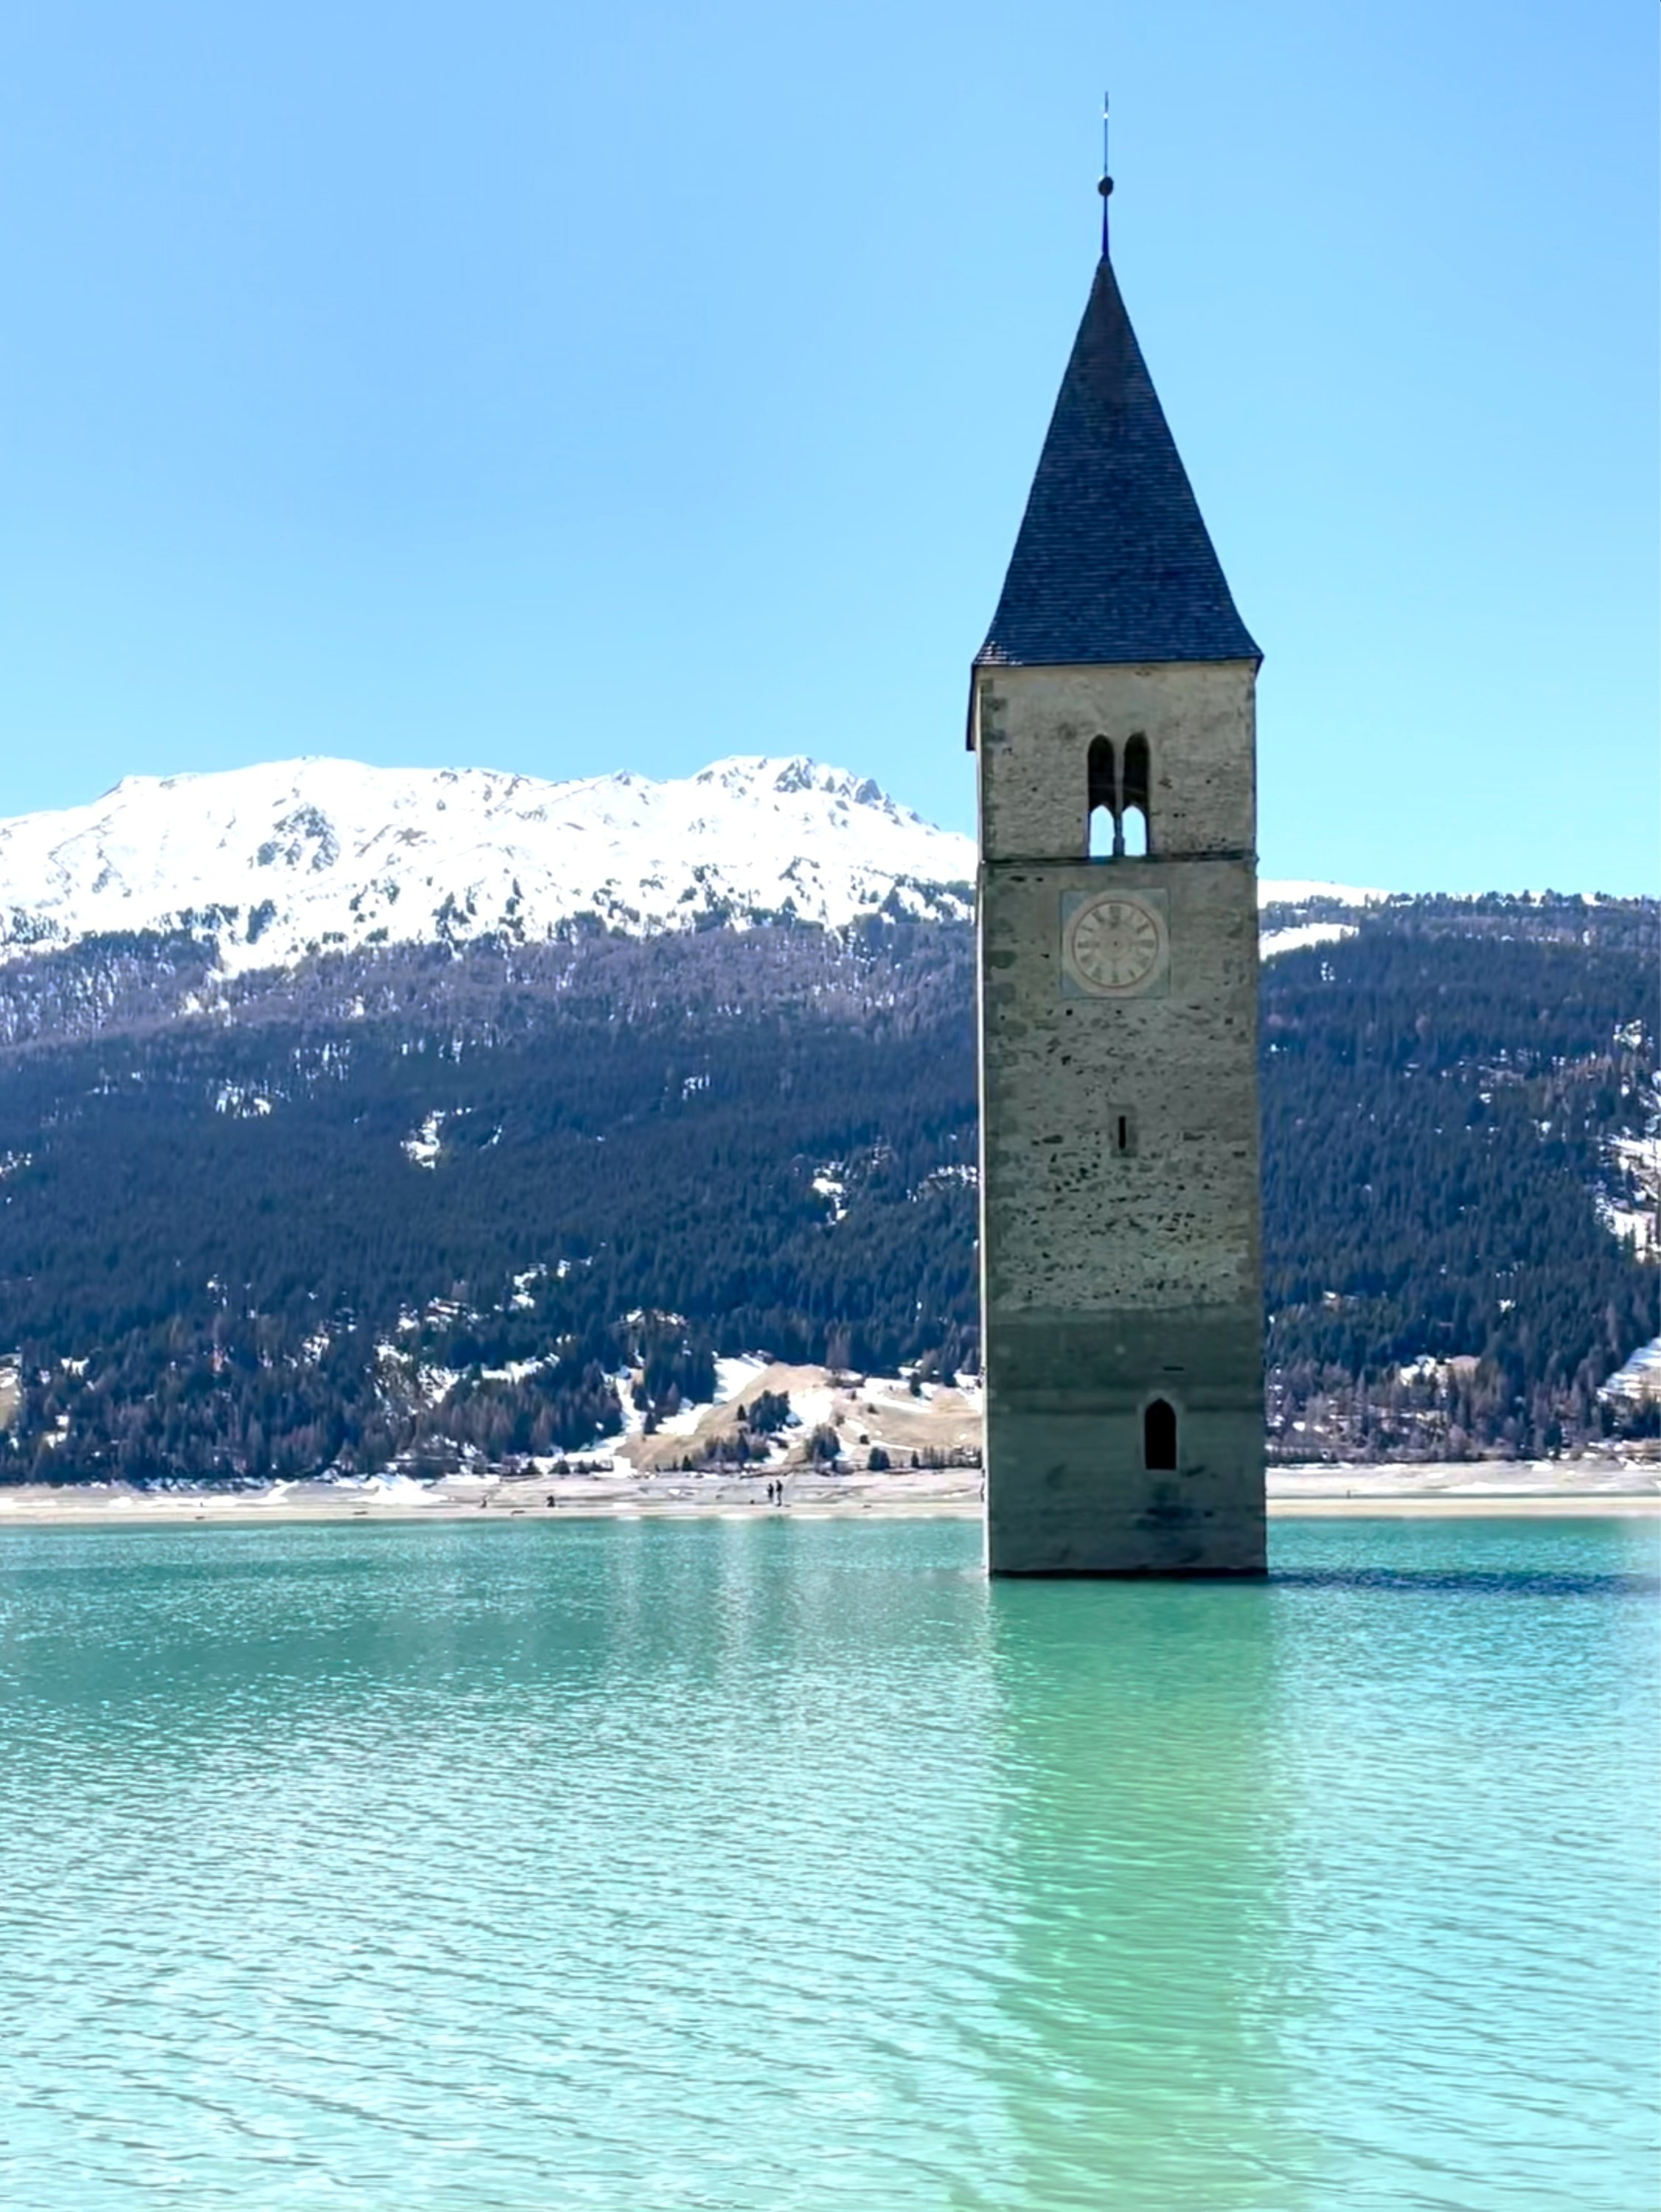 The St. Catherine Church bell tower emerges alone from Lake Reschen as it is drained to repair a hydroelectric plant that replaced the village of Curon 71 years ago, in a screengrab from a video, Resia Lake, Italy, April 24, 2021.  (LUISA AZZOLINI/Handout via Reuters)